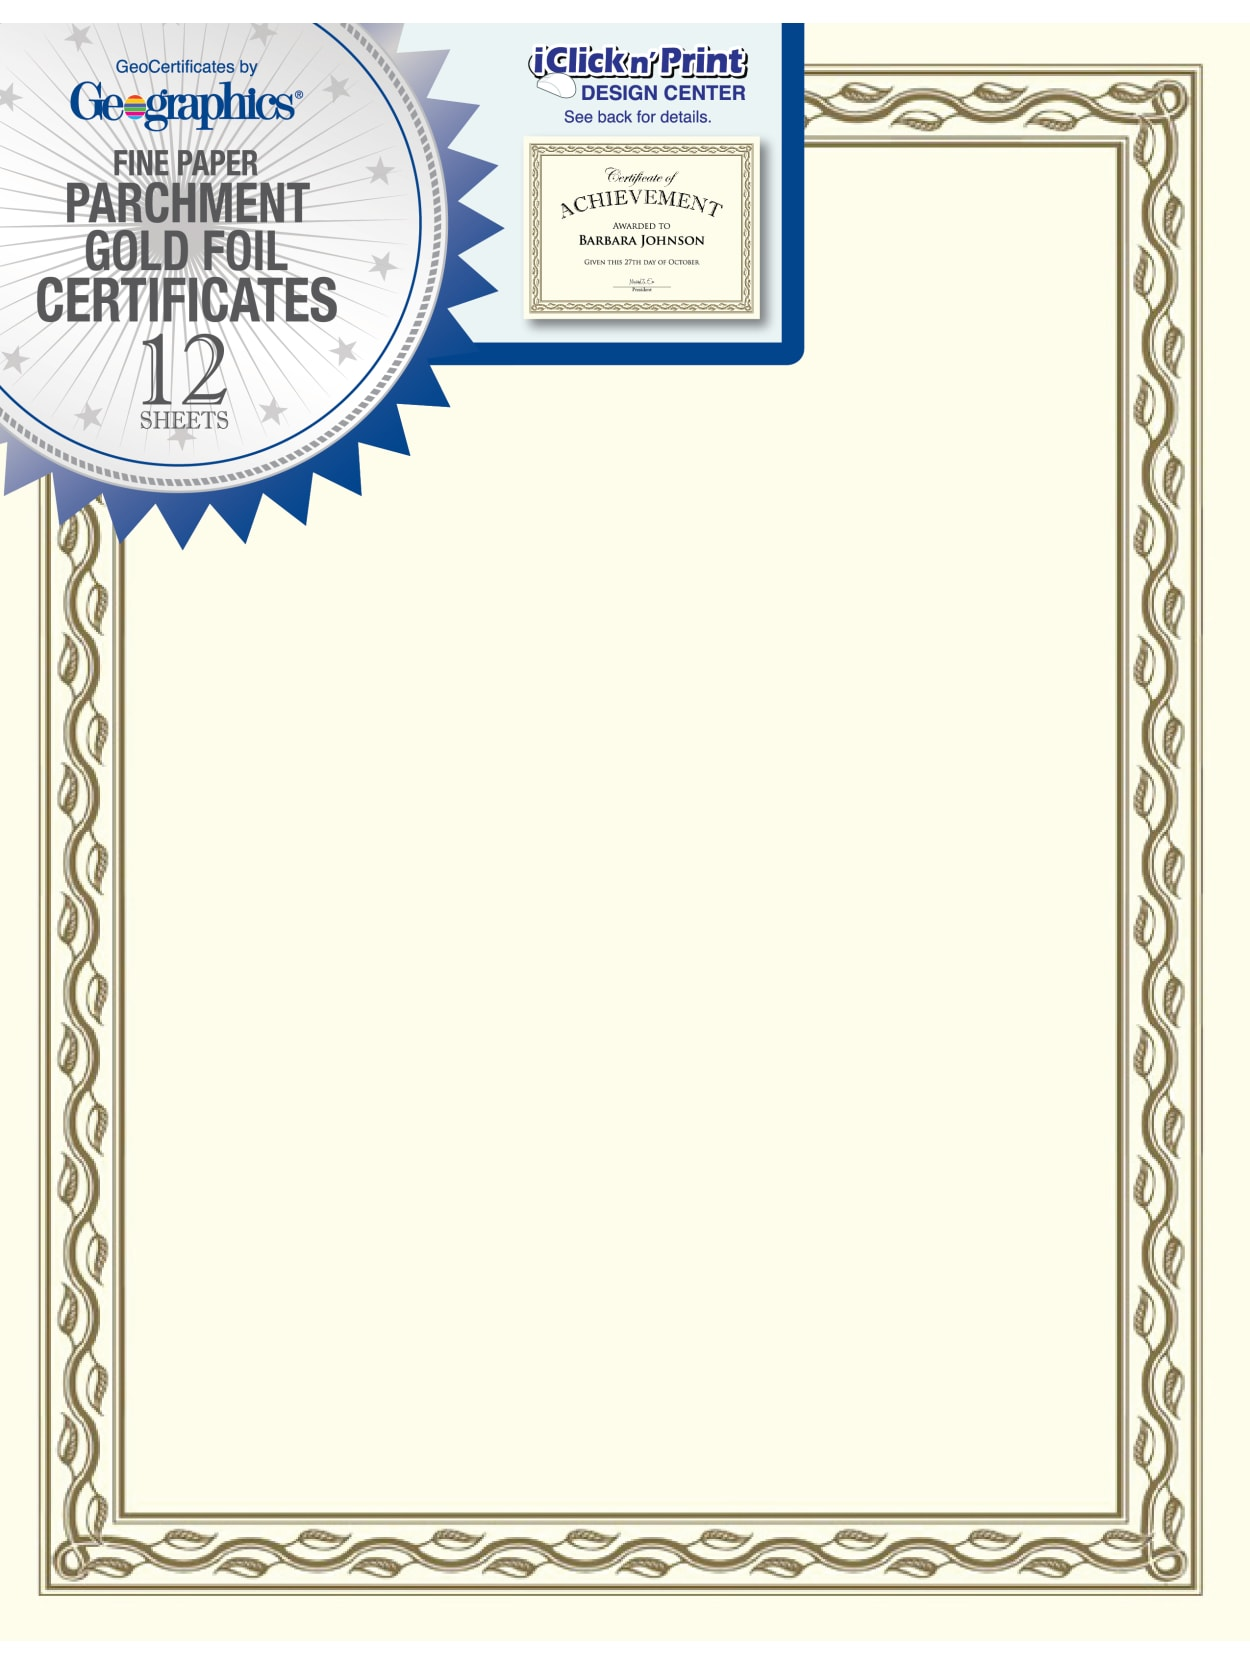 Geographics Parchment Certificates 8 12 X 11 Serpentine Gold Foil Pack Of 12 Office Depot